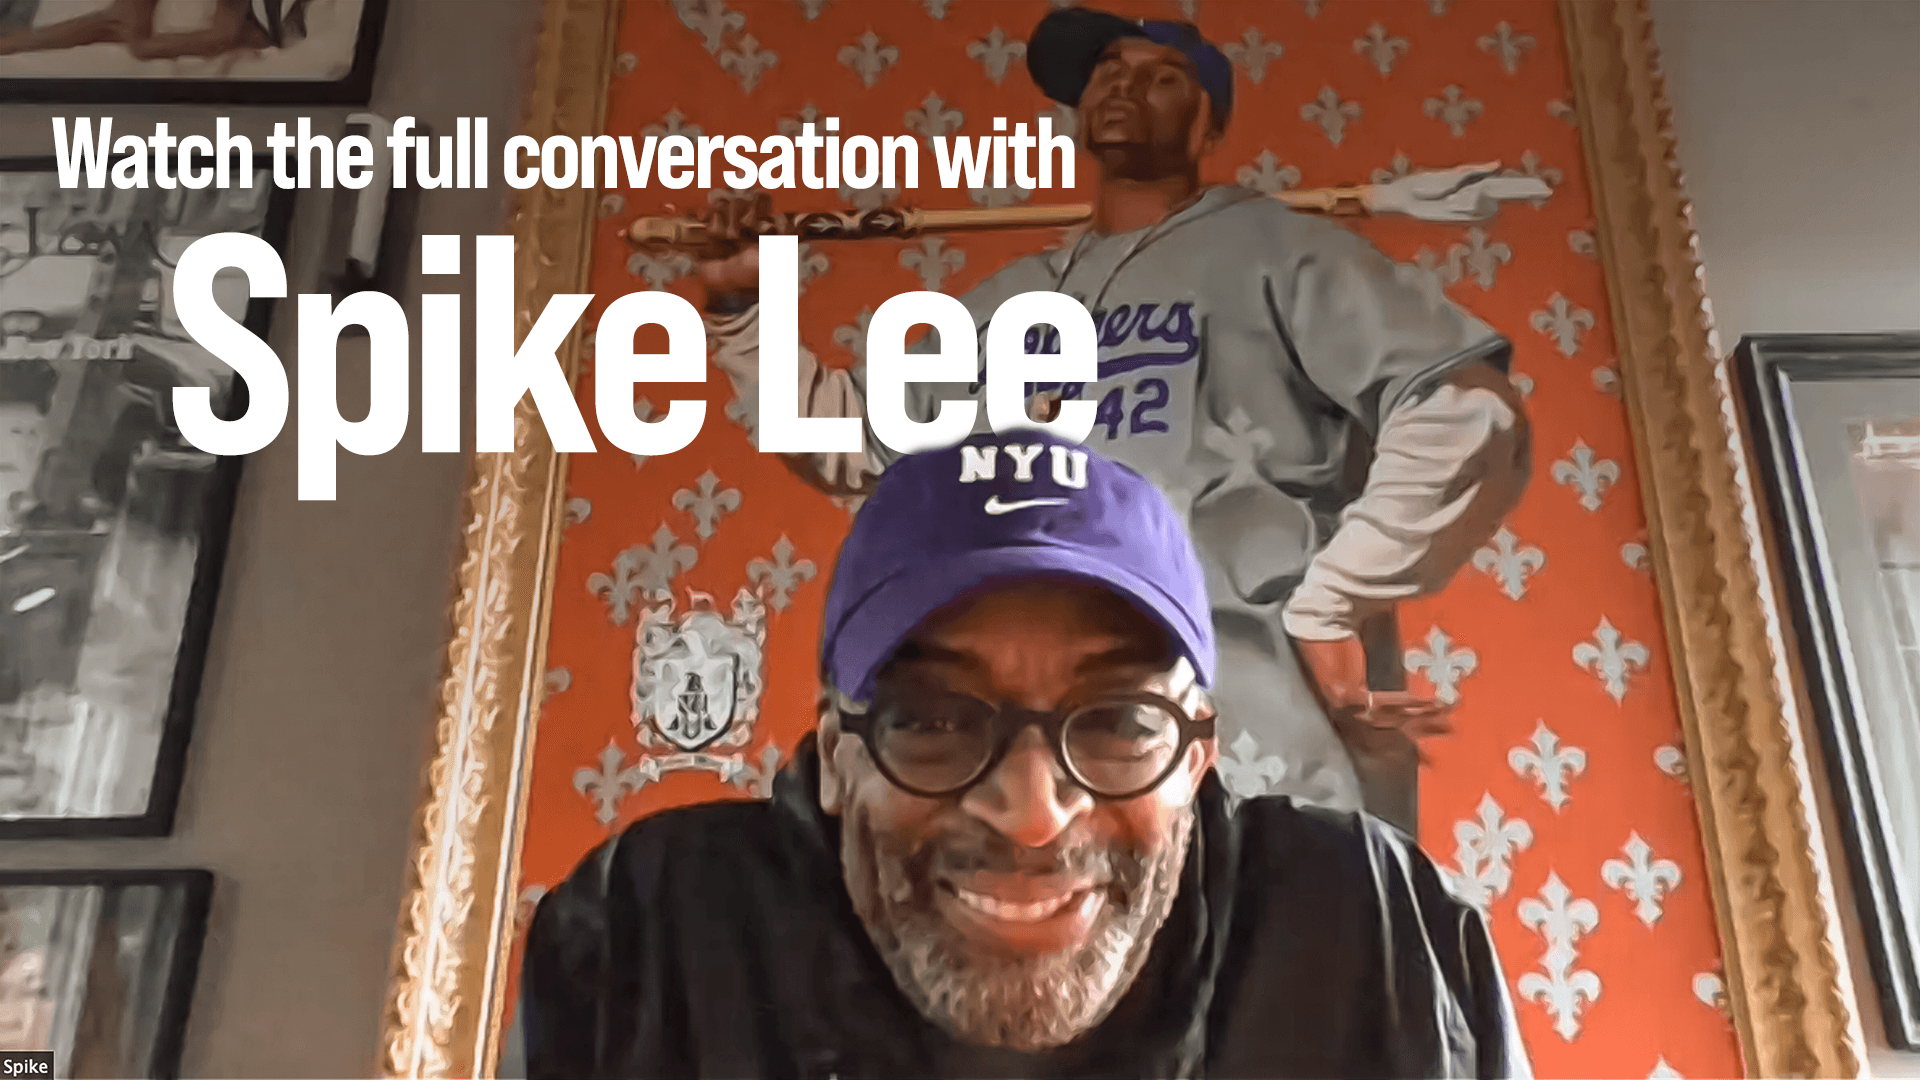 2020-06-25-hlms-spikelee-dotherightthing-zoom-sp-6-emailv2.png